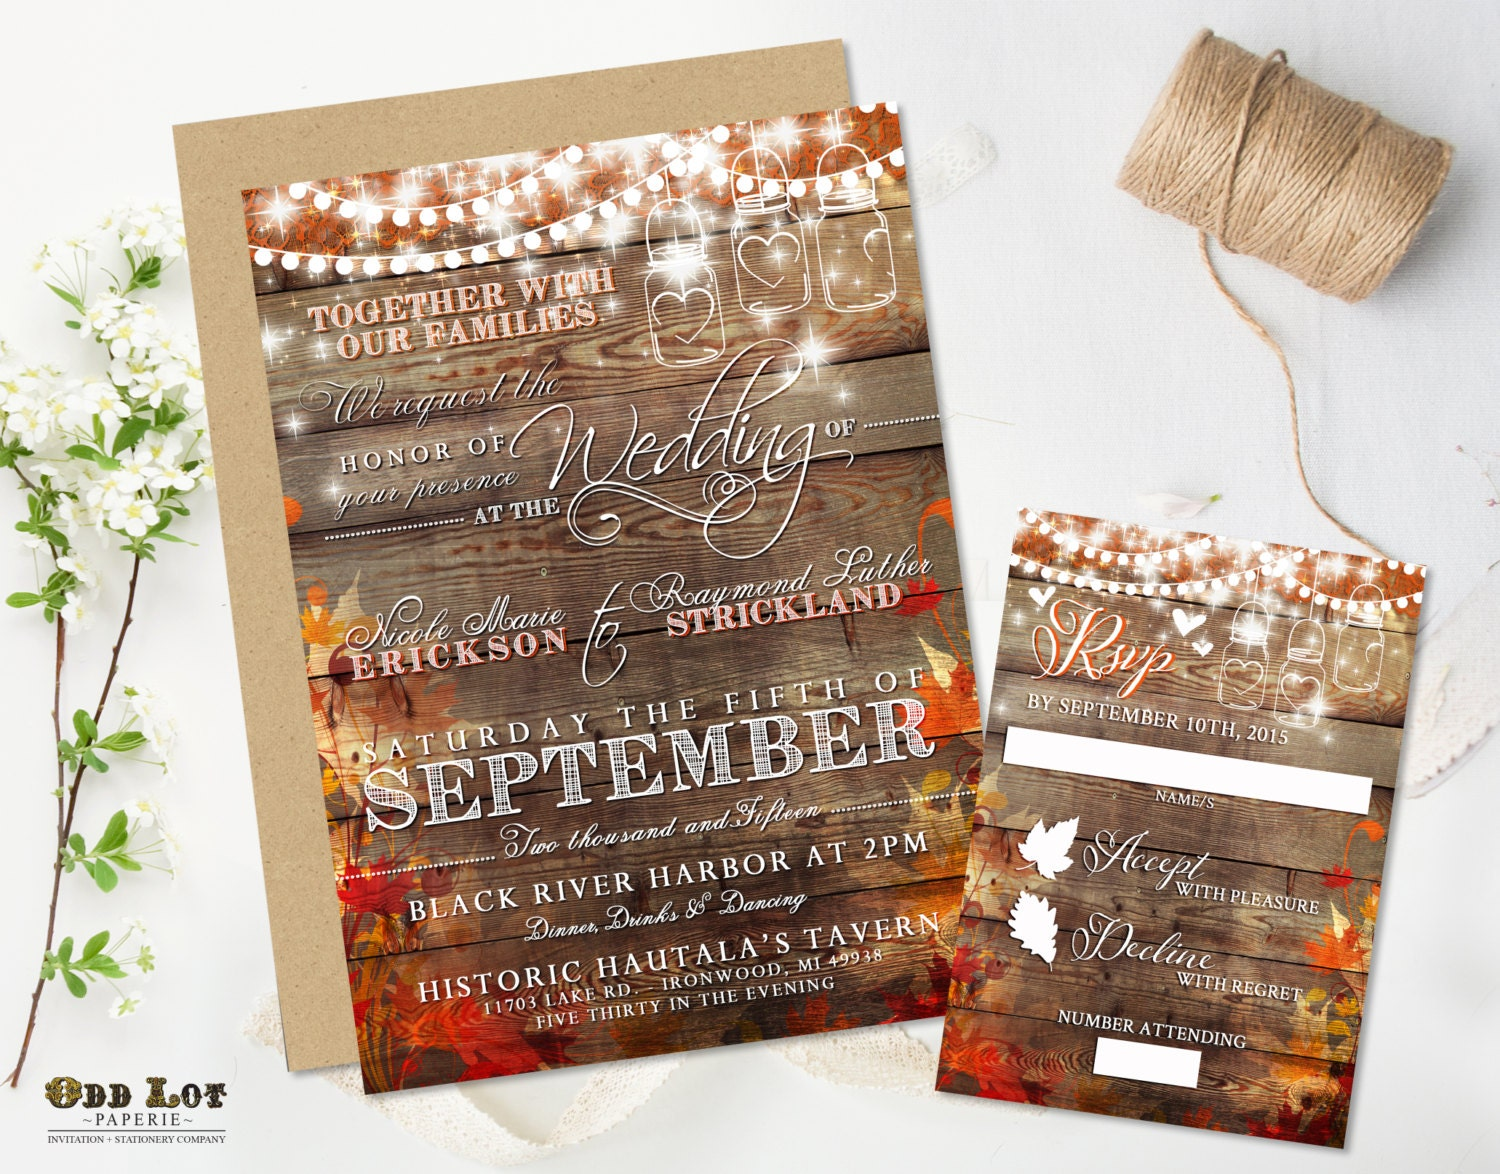 fall wedding invites autumn wedding invitations Rustic Wedding Invitation Fall Wedding Invite Country Wedding Mason Jar String Lights Autumn Leaves DIY Printable Rustic Wedding Set Digital